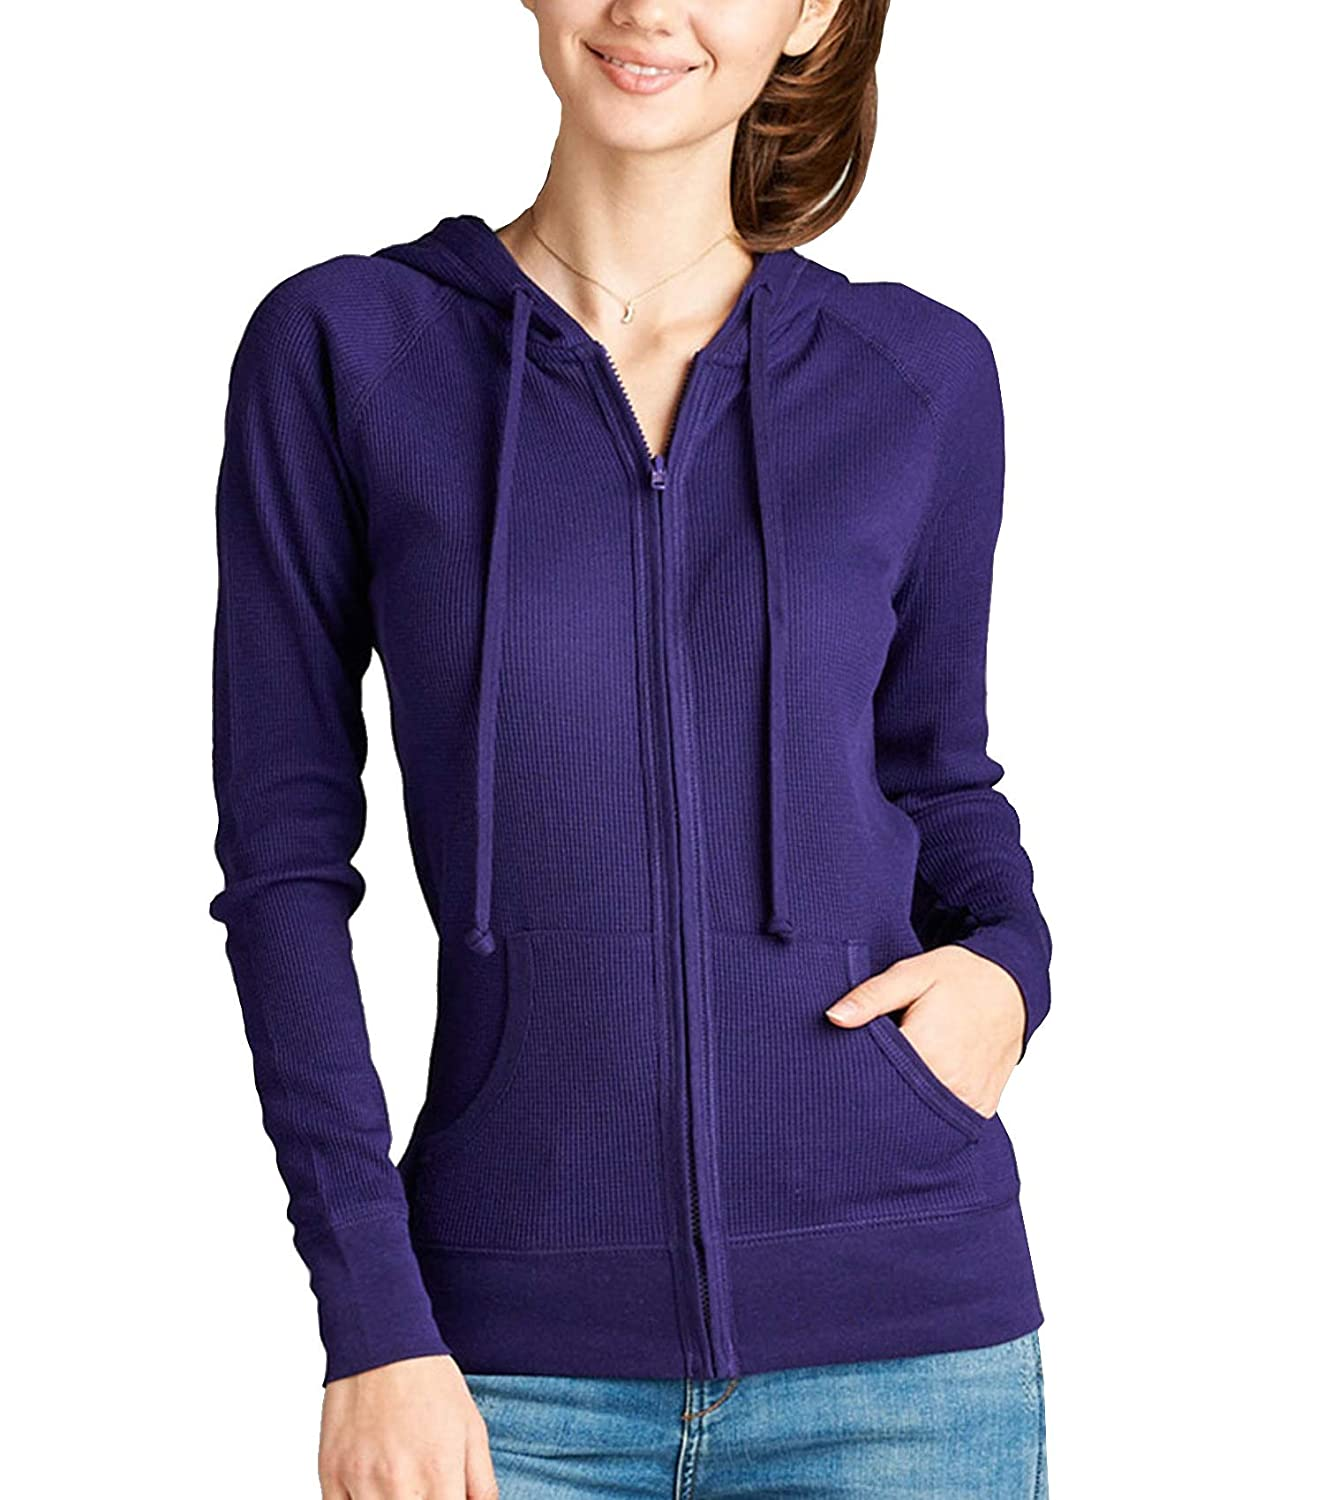 ClothingAve. Women's Basic Solid Long Sleeve Zip up Hoodie Jacket Collection